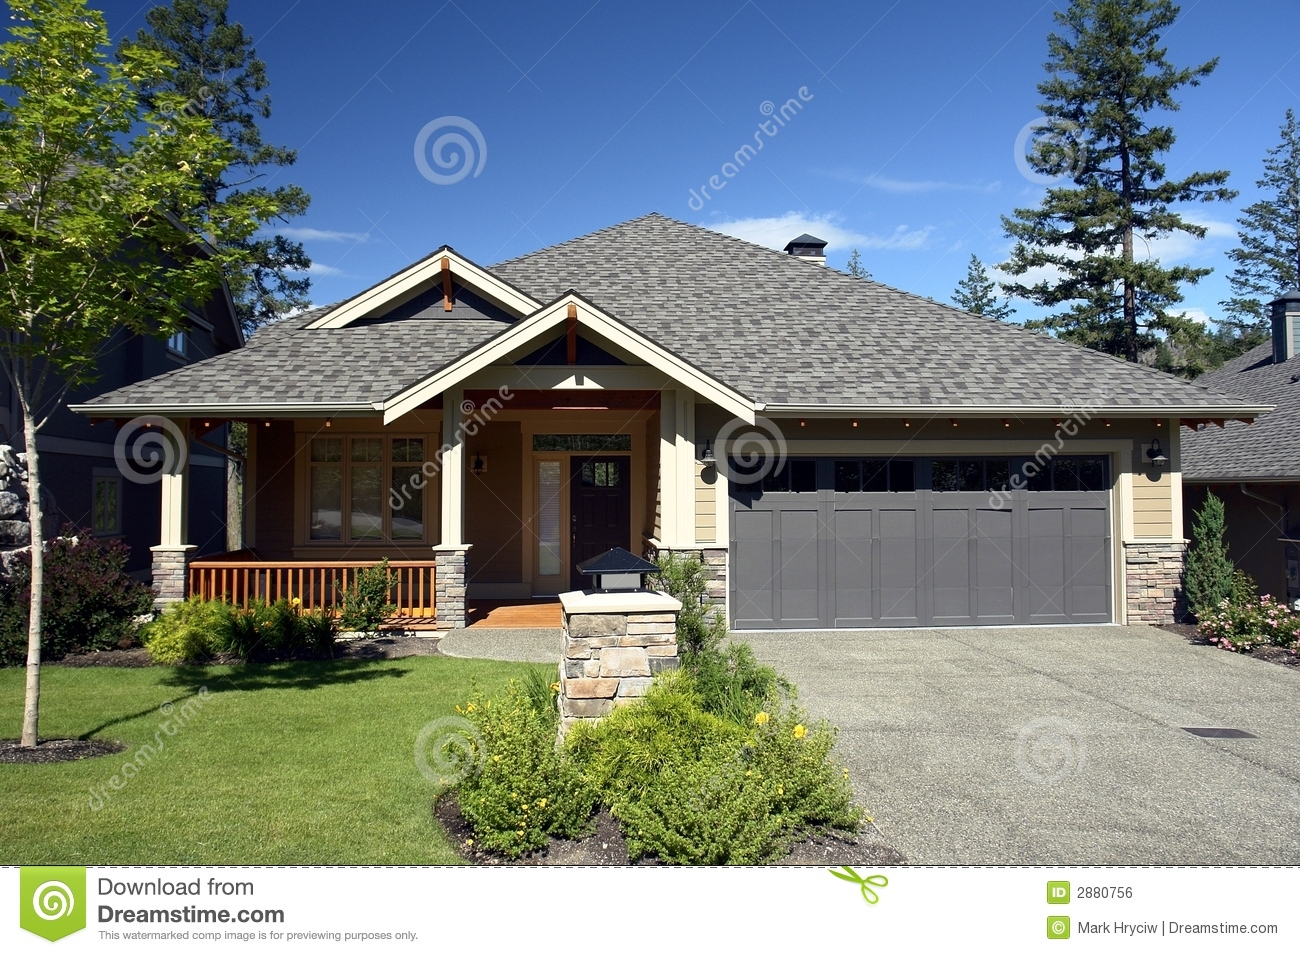 New house for sale royalty free stock image image 2880756 for New house